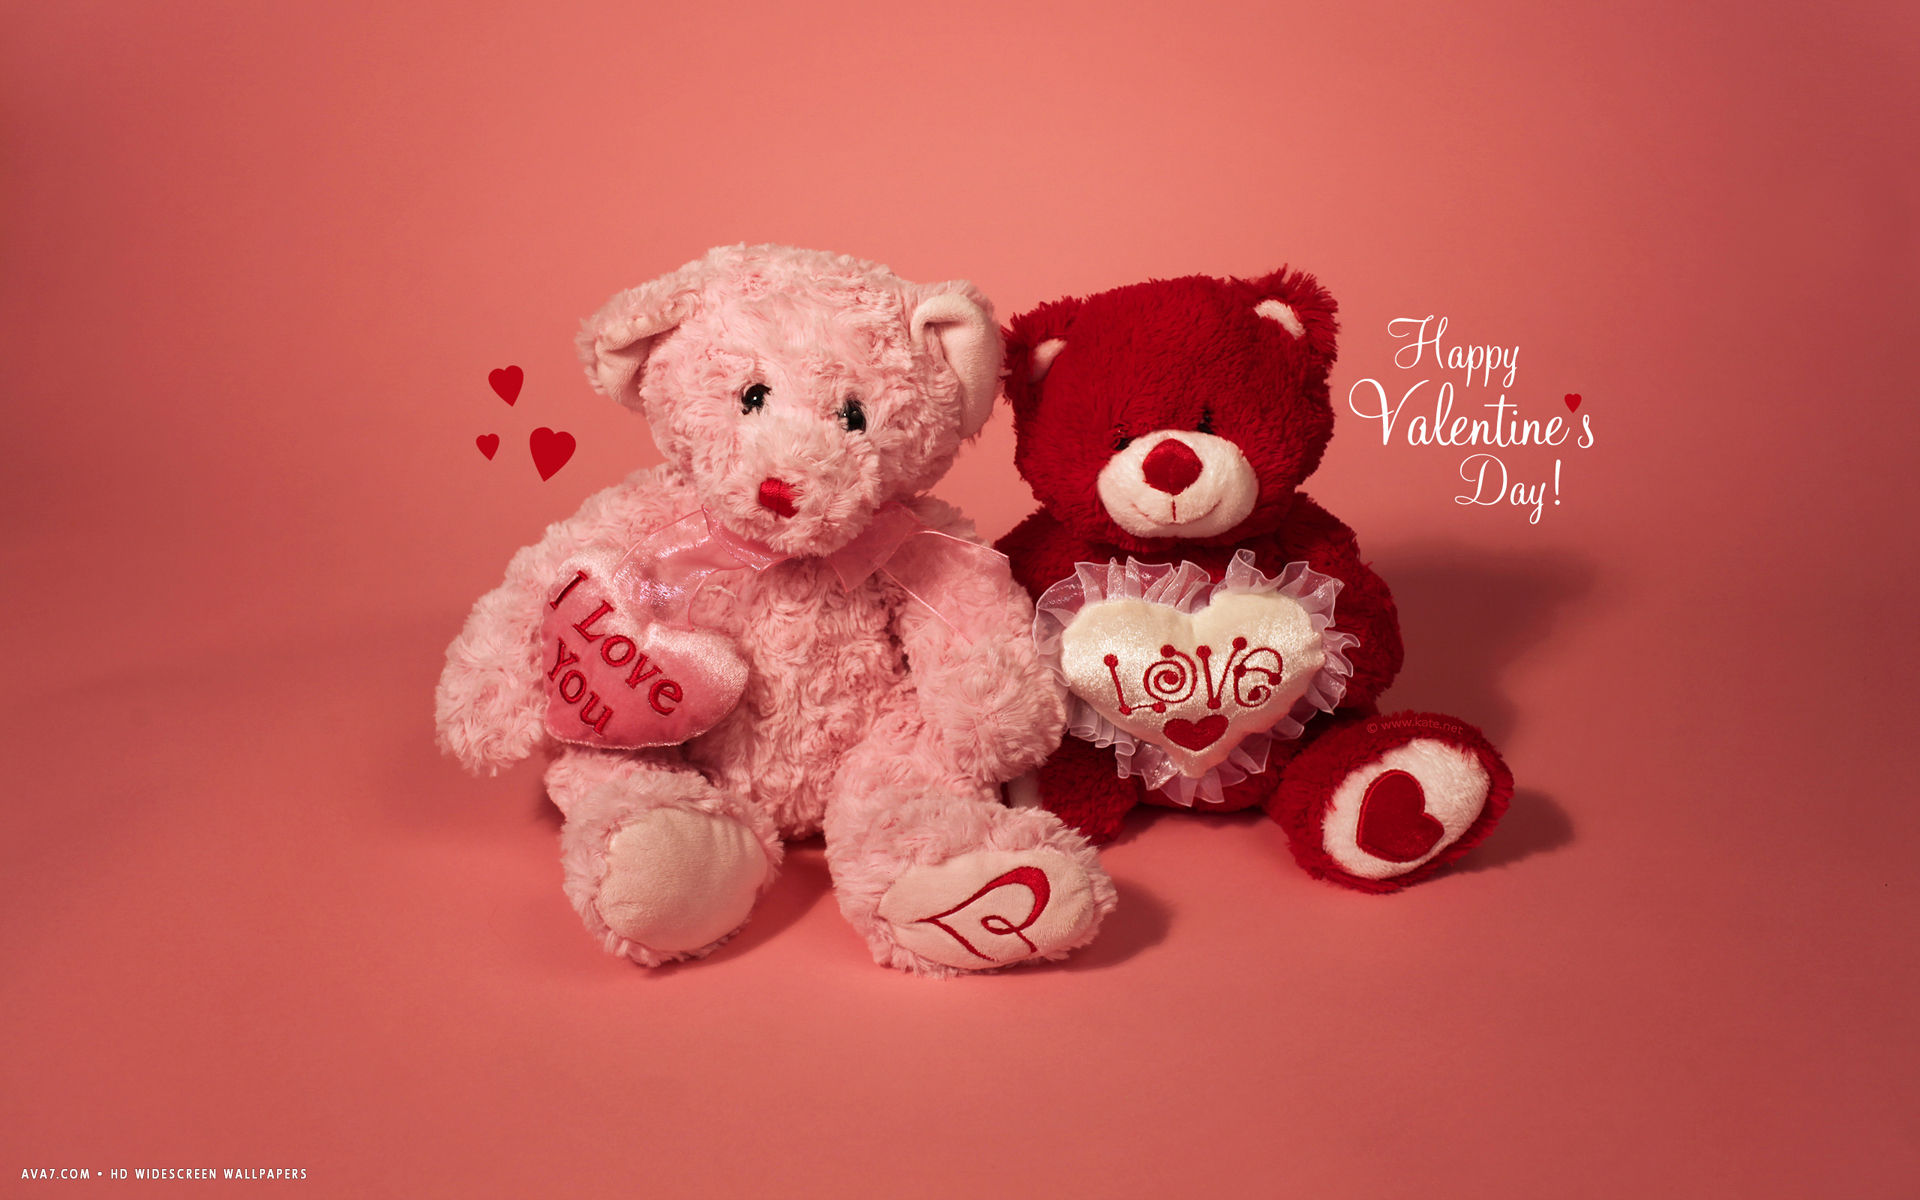 Valentines Day Happy Teddy Bears Hearts I Love You Hd Widescreen